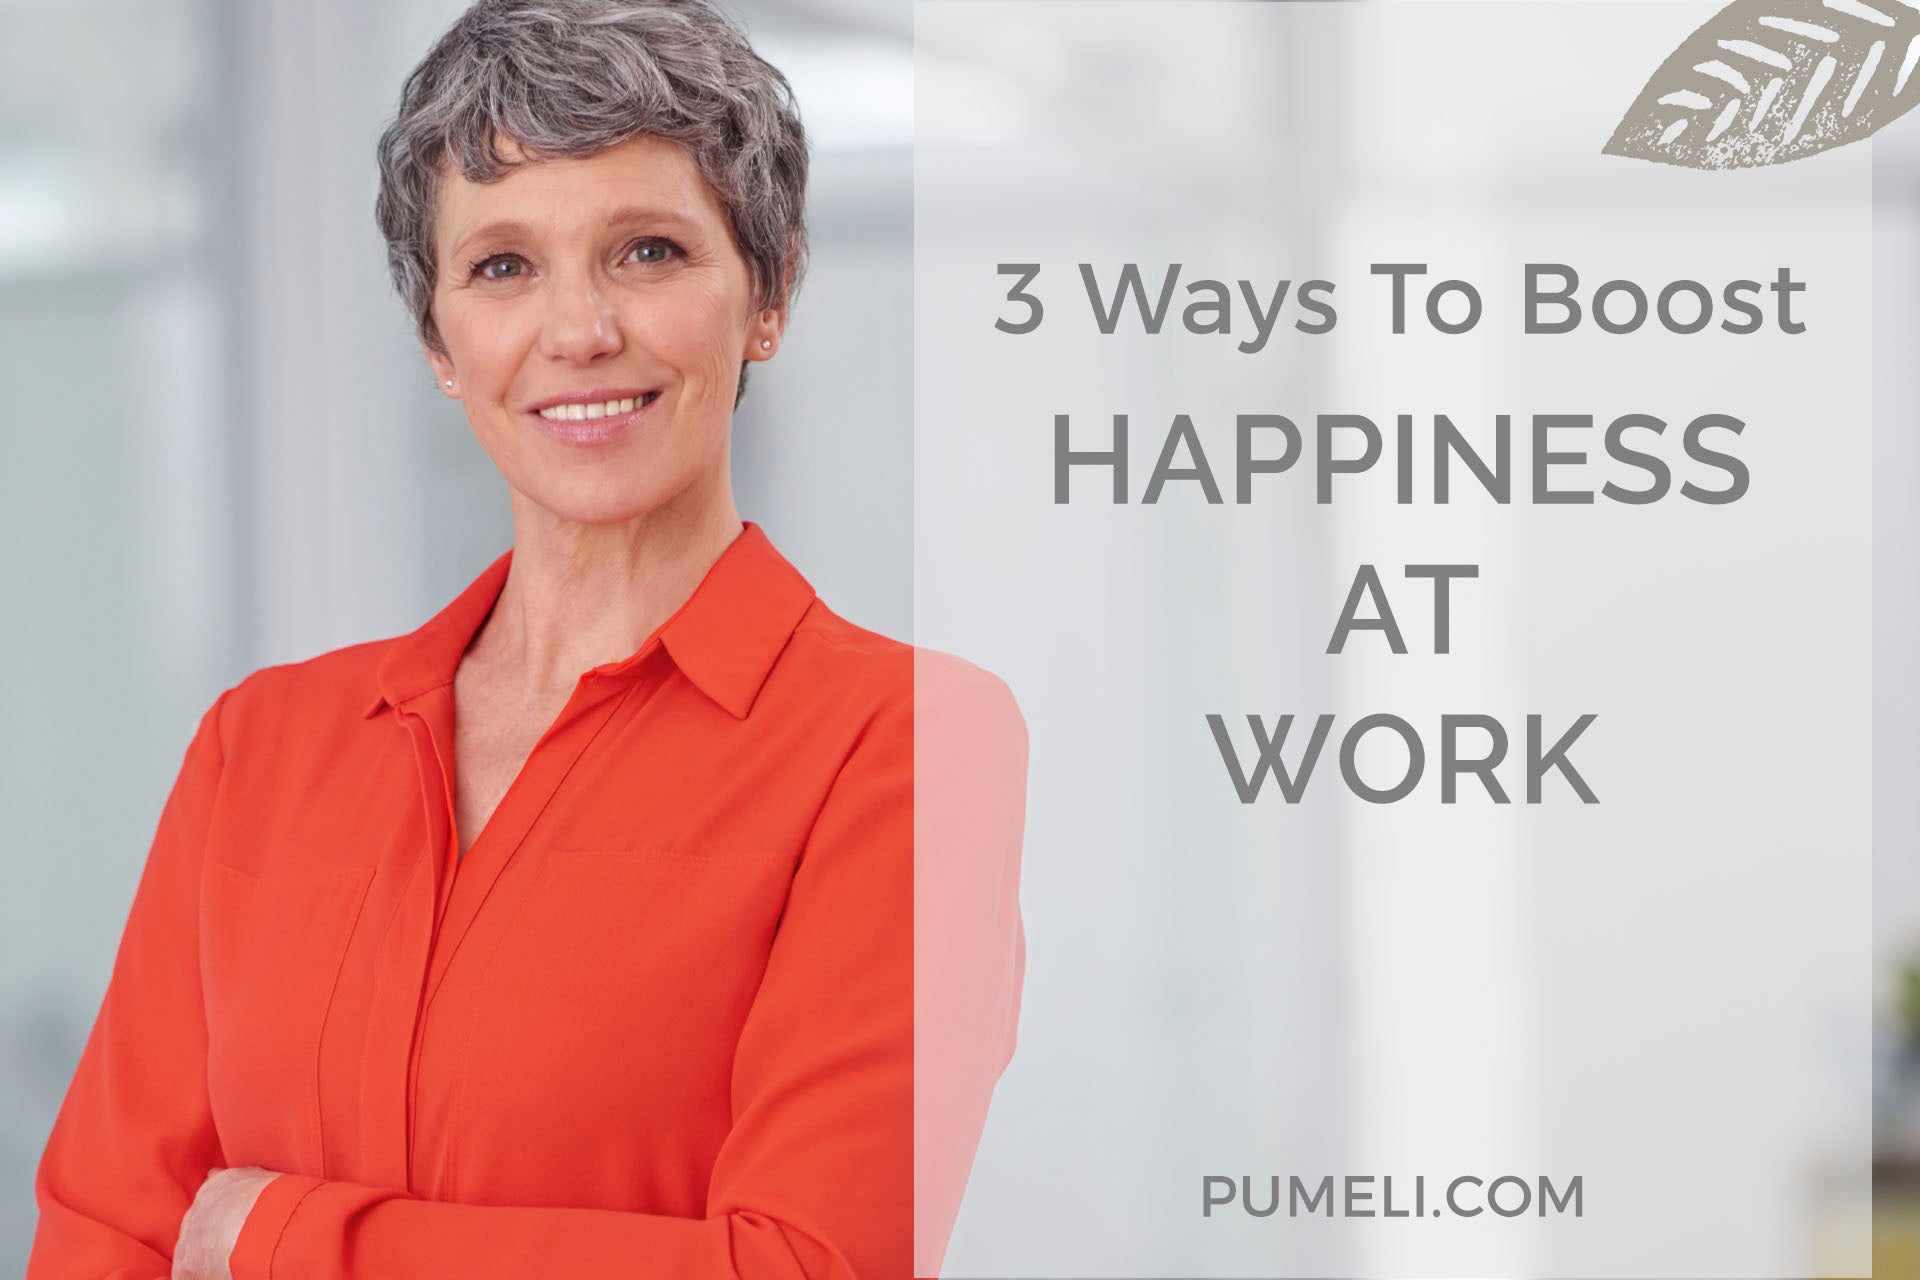 How to Boost Happiness At Work